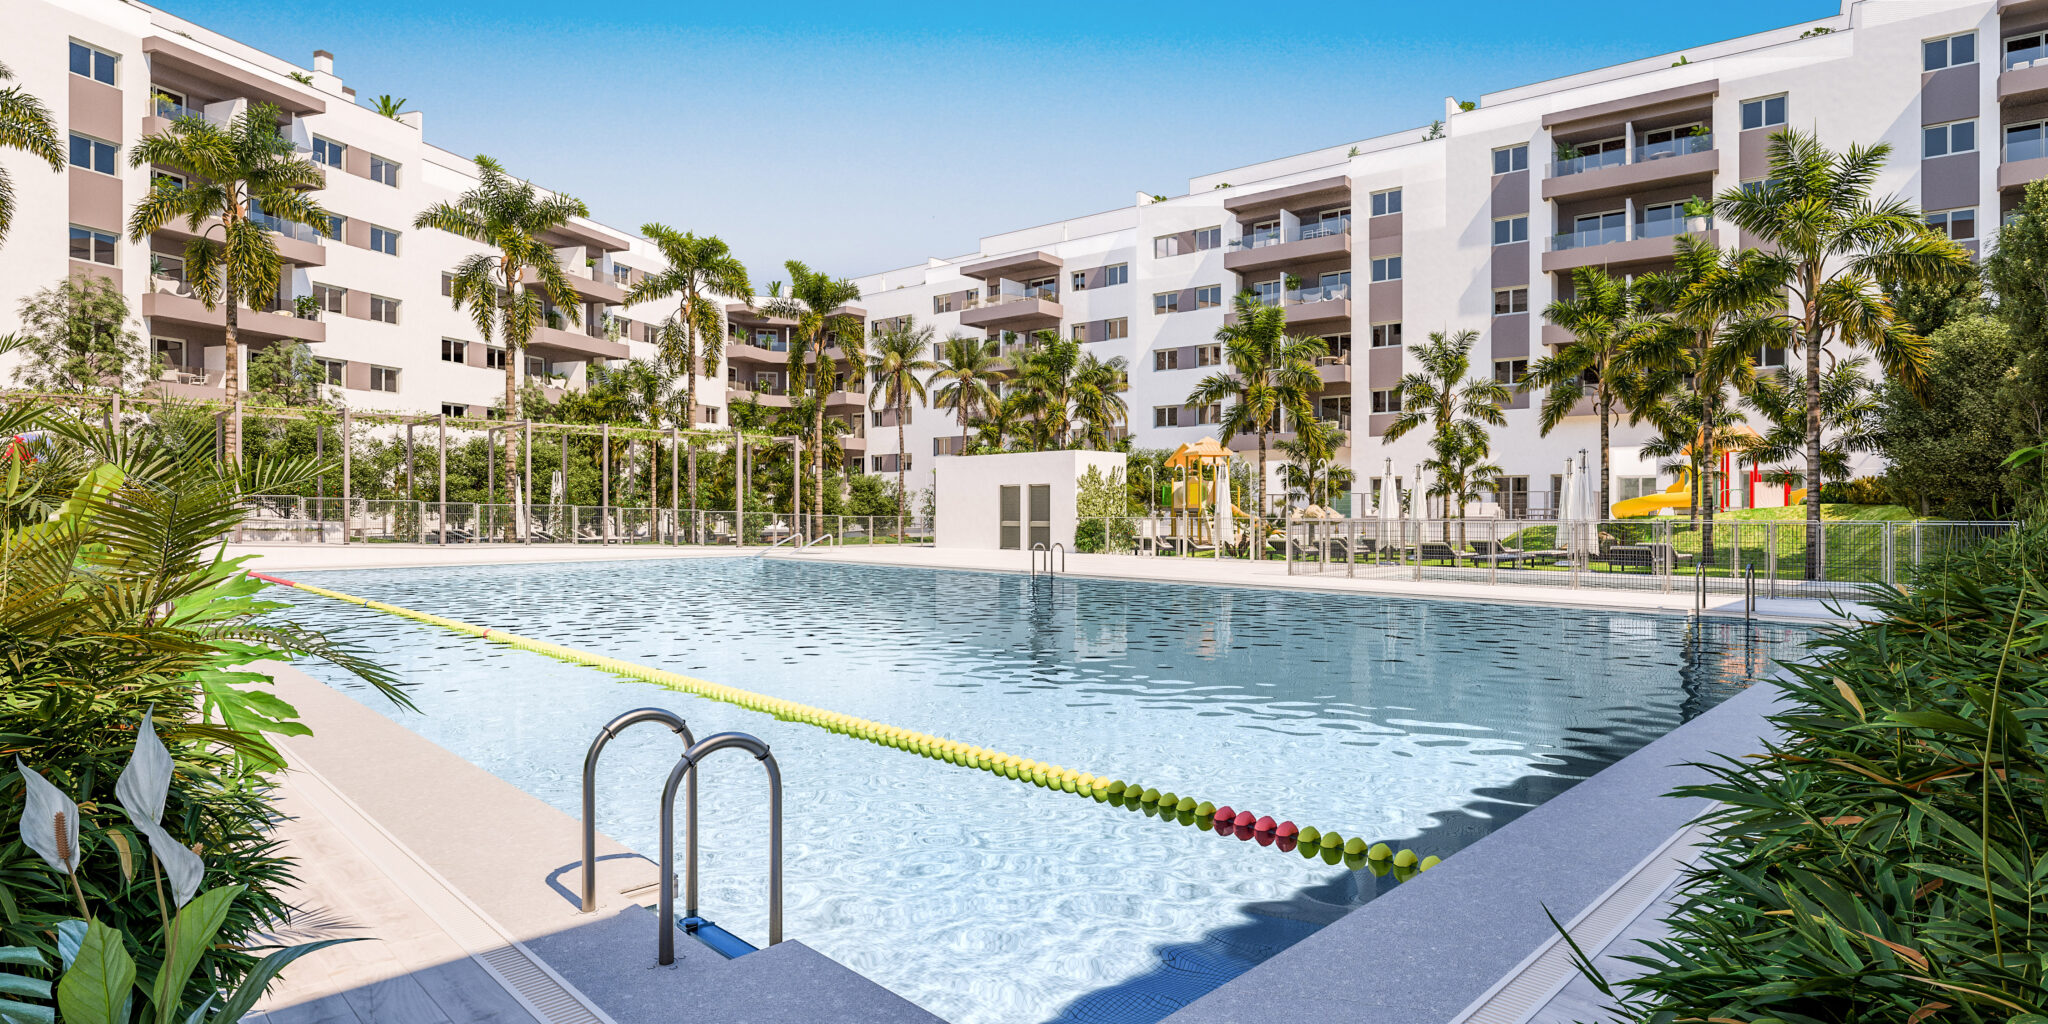 1,2,3 NEW Bedrooms apartments with parking space in Mijas